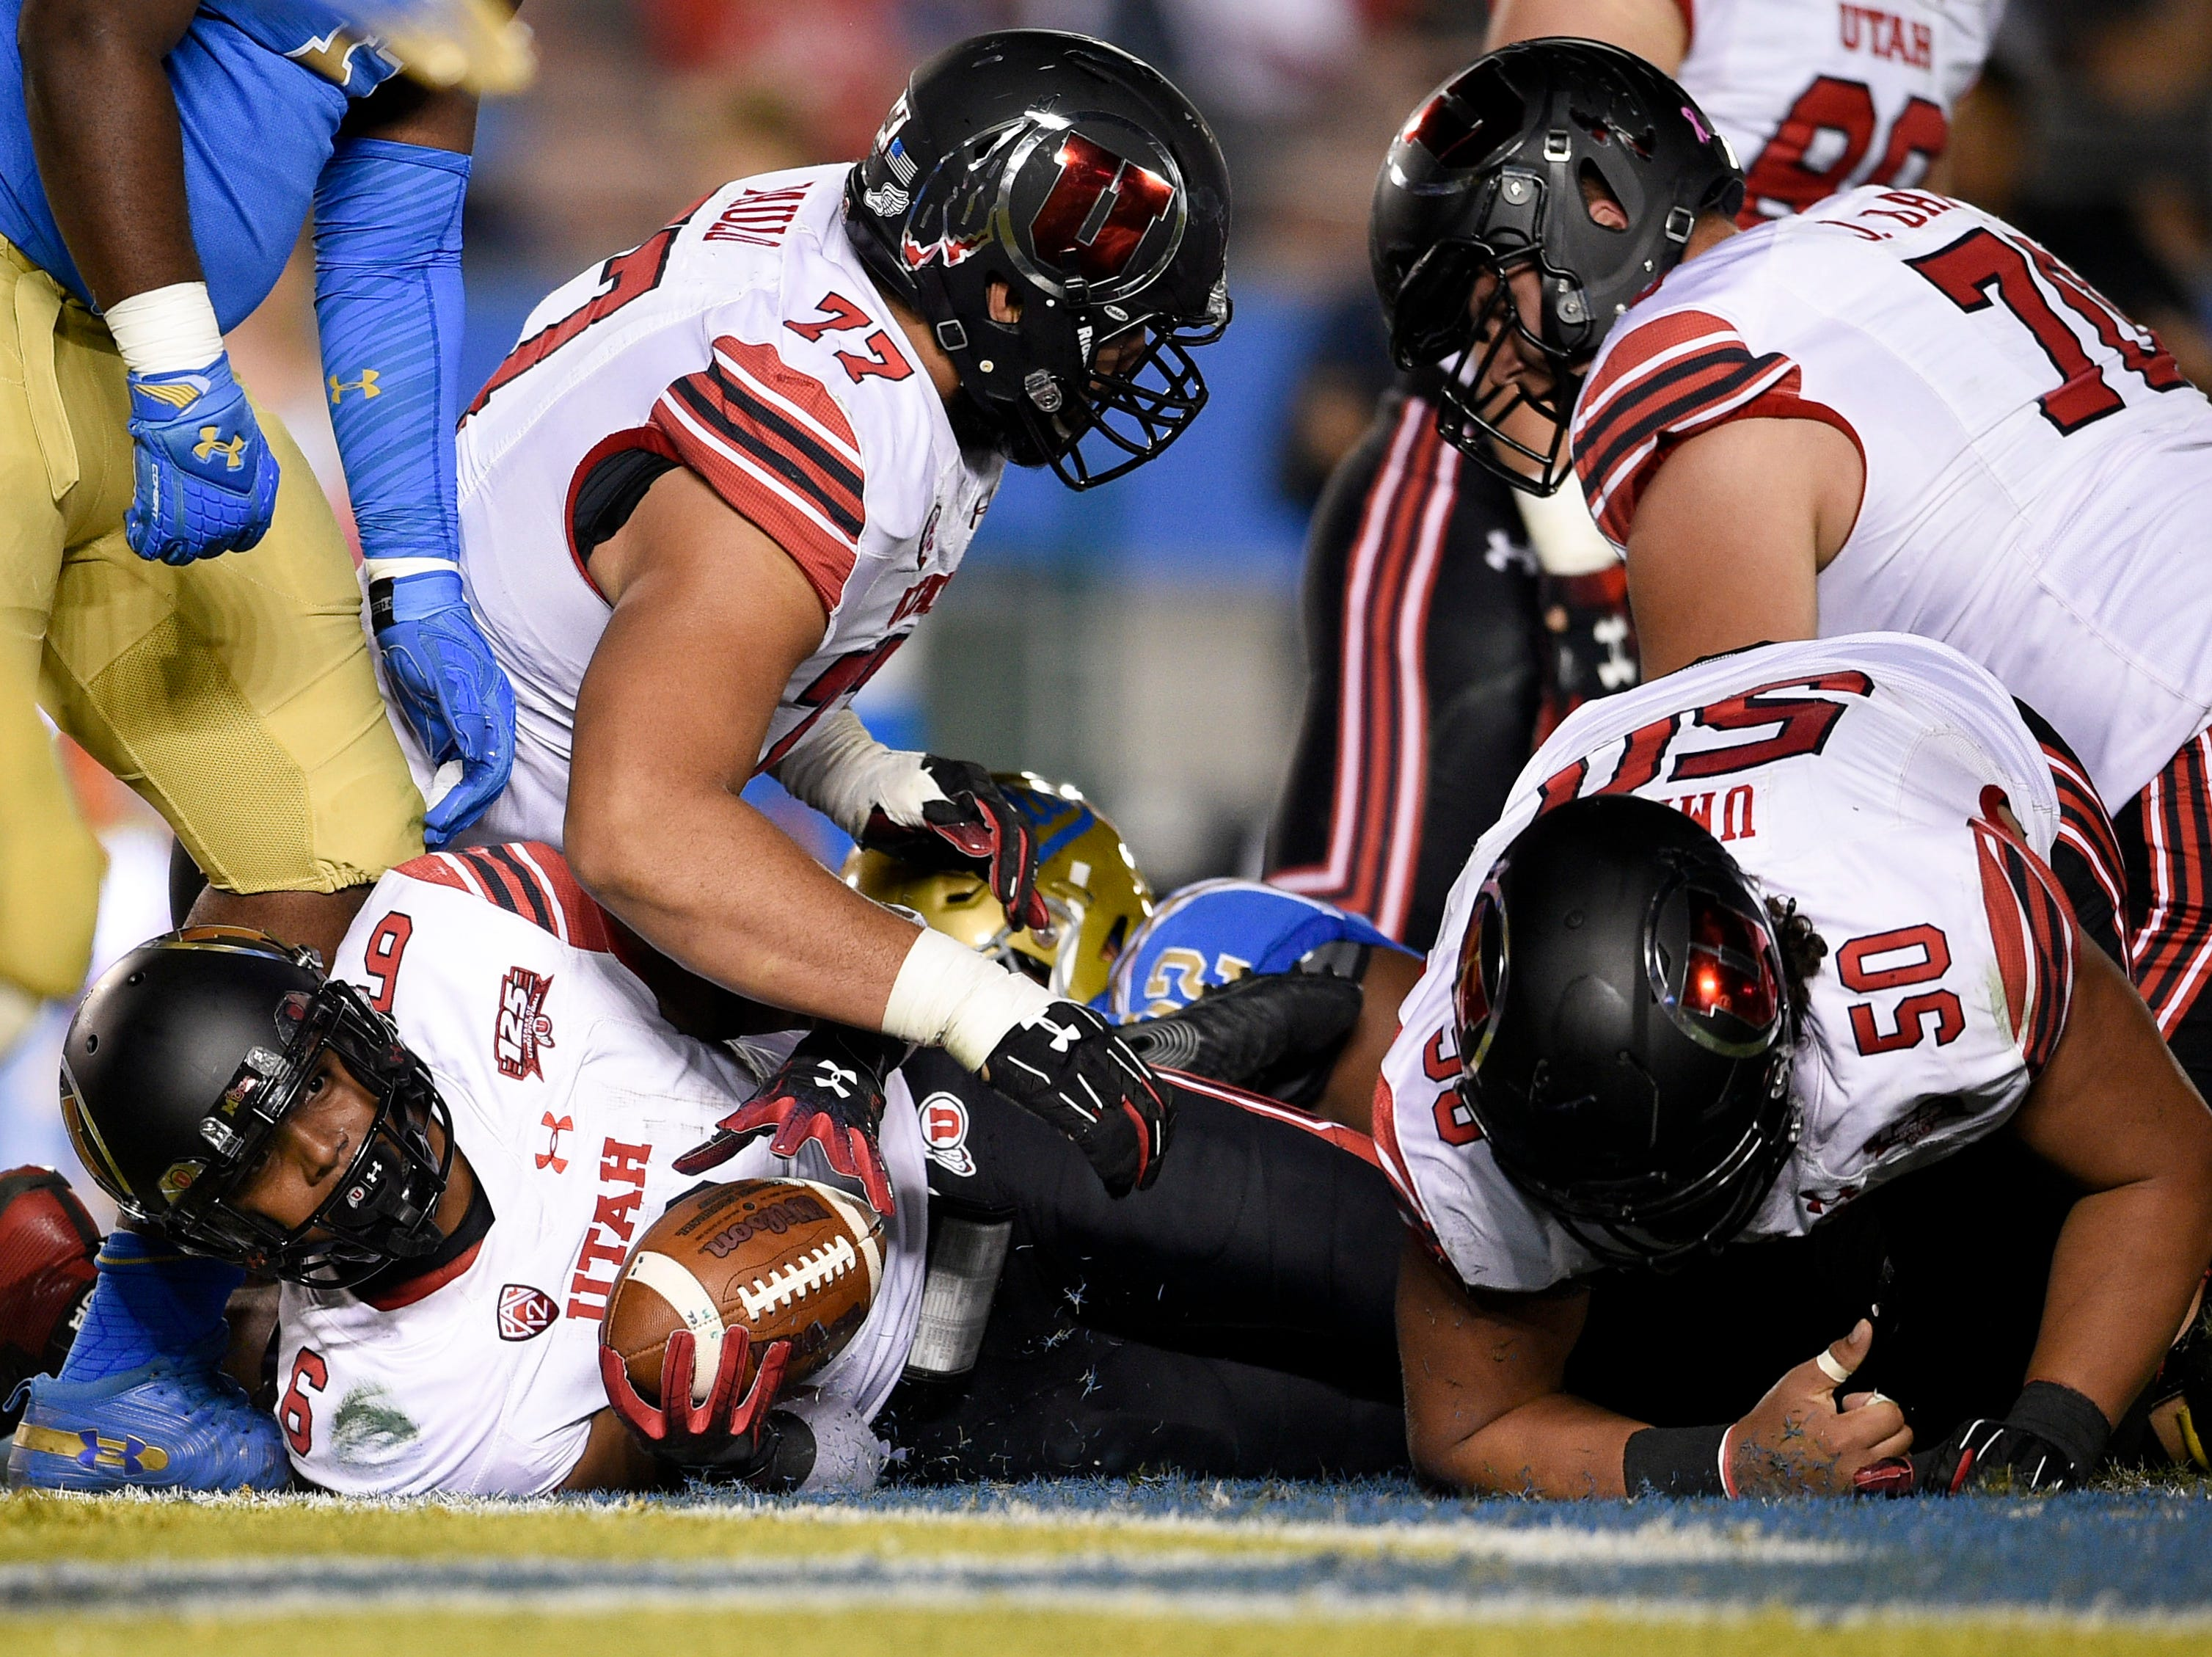 Utah Utes running back Armand Shyne (6) looks to the sideline after scoring a touchdown during the second half against the UCLA Bruins at the Rose Bowl.